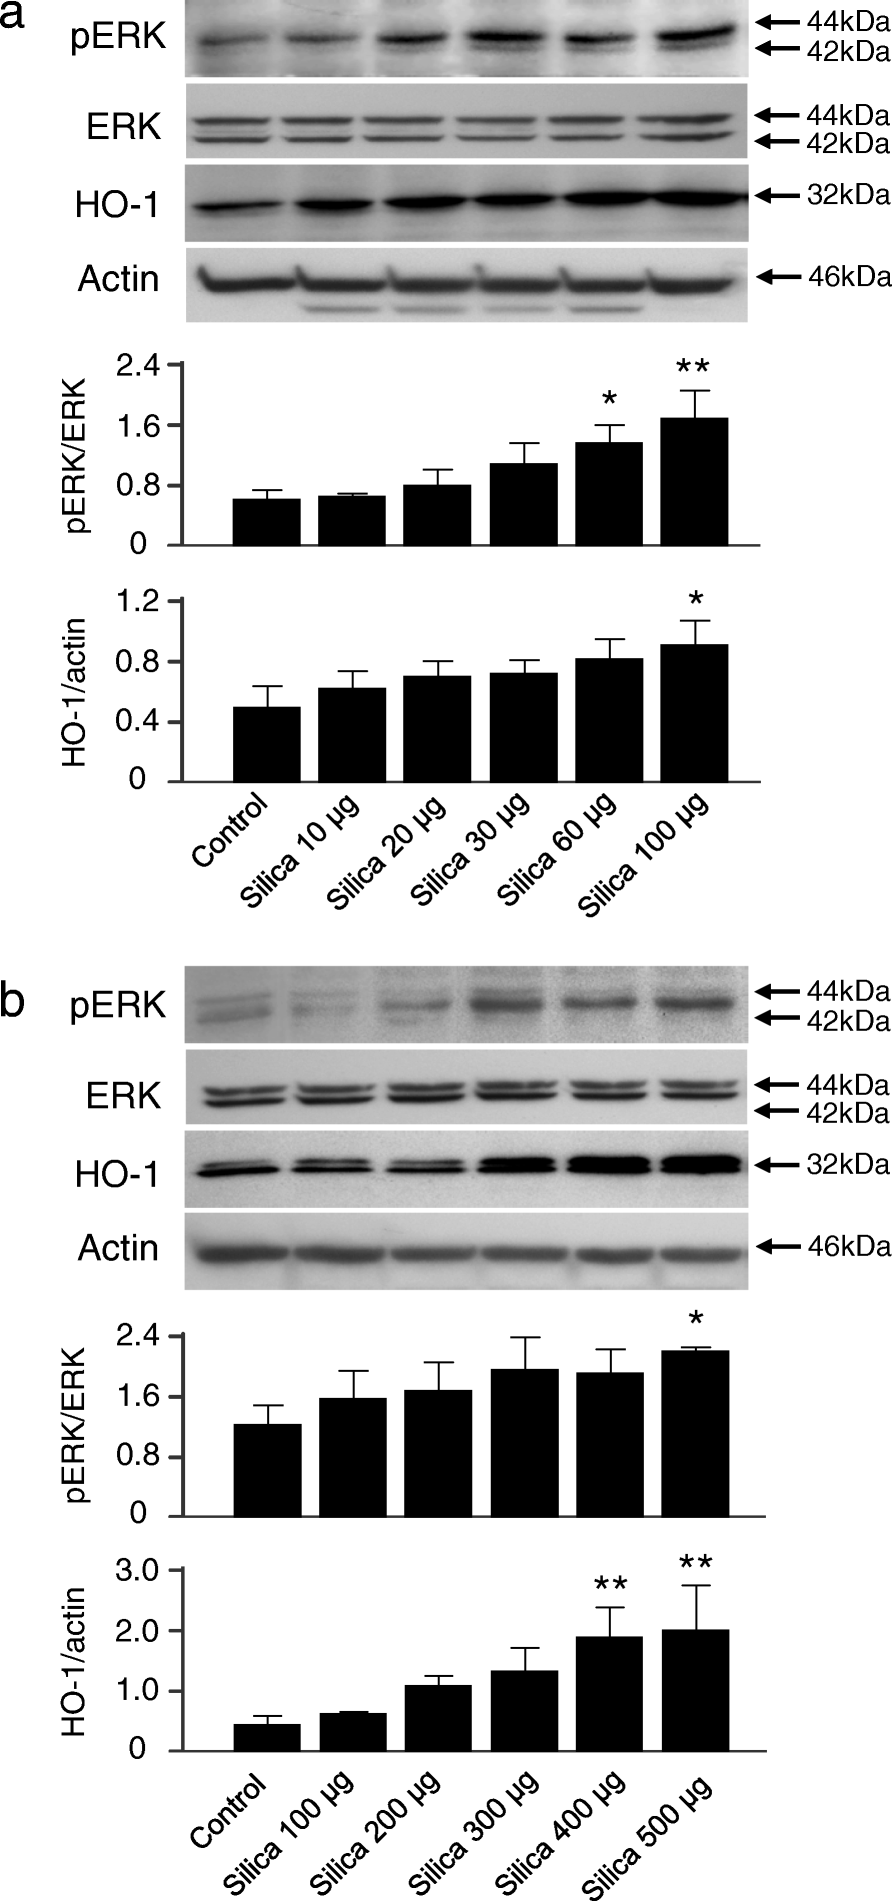 Regulatory Role Of Heme Oxygenase 1 In Silica Induced Lung Injury 100 Dai Nippon Fig 4